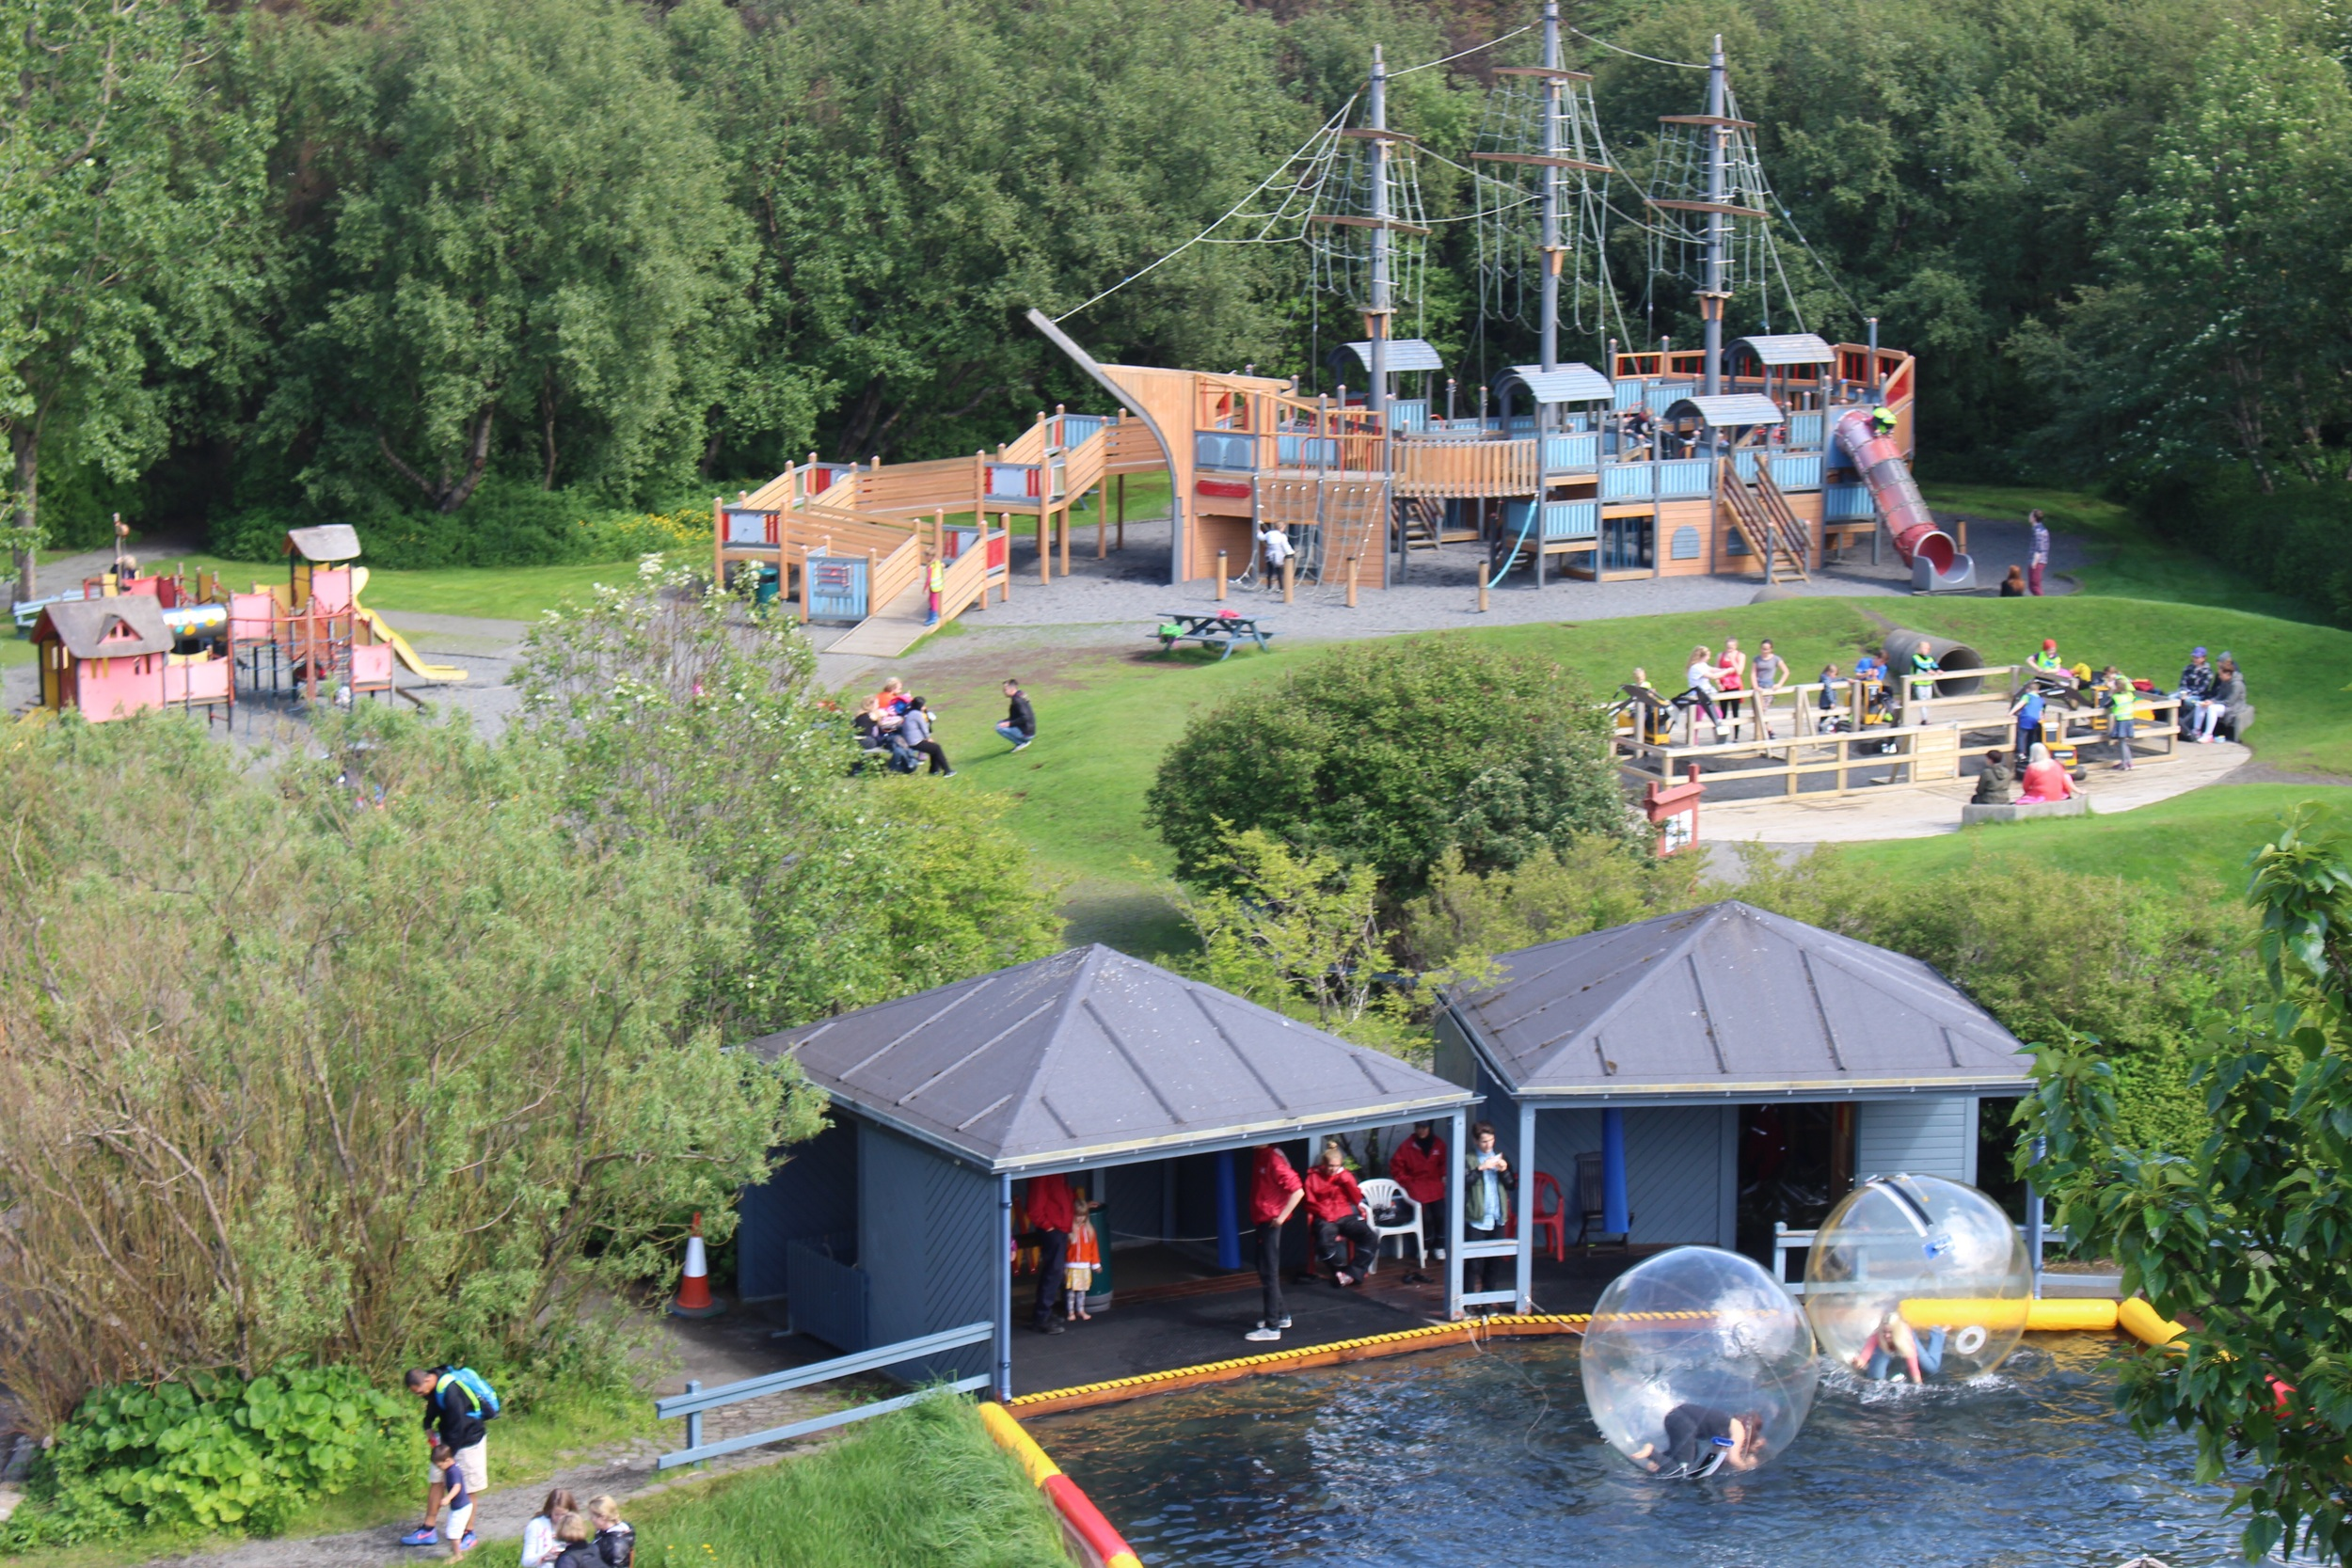 The playful paradise for children of all ages at Laugardalur in Reykjavic